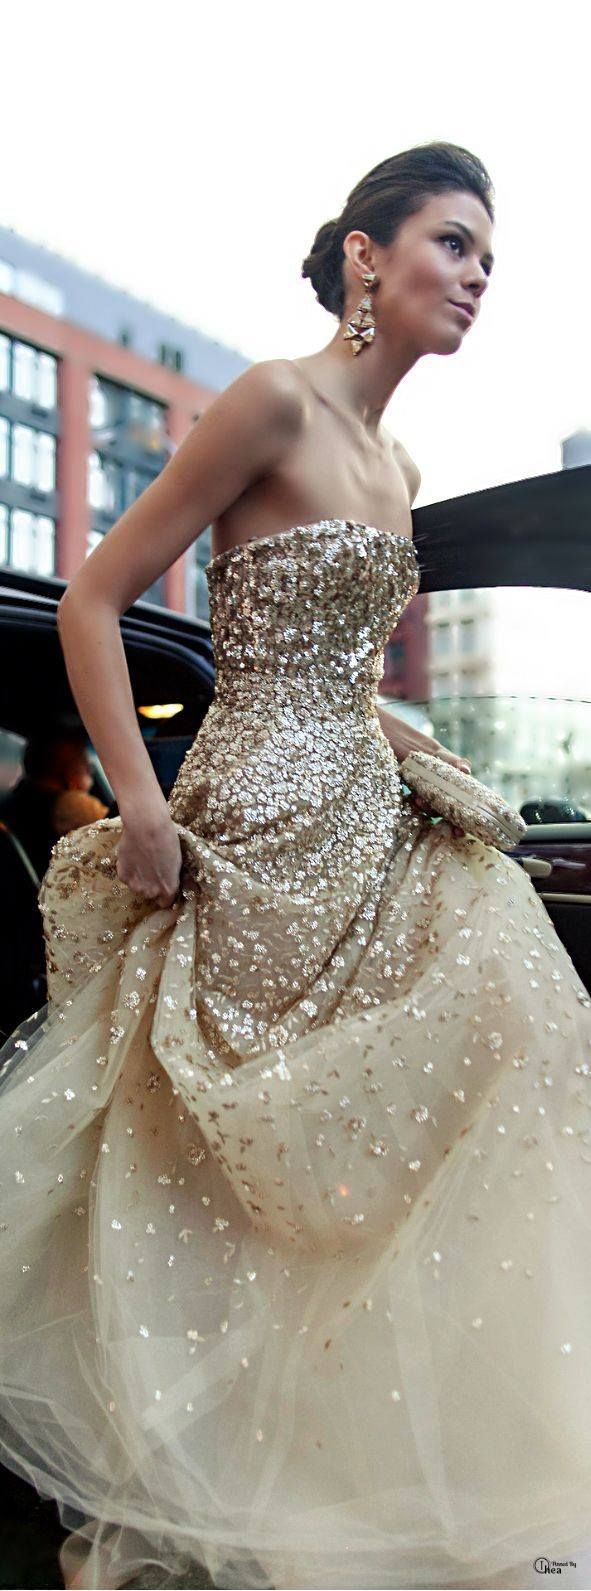 Gold Glitter Dress. Definitely need this dress...definitely need to find a reason to wear this dress